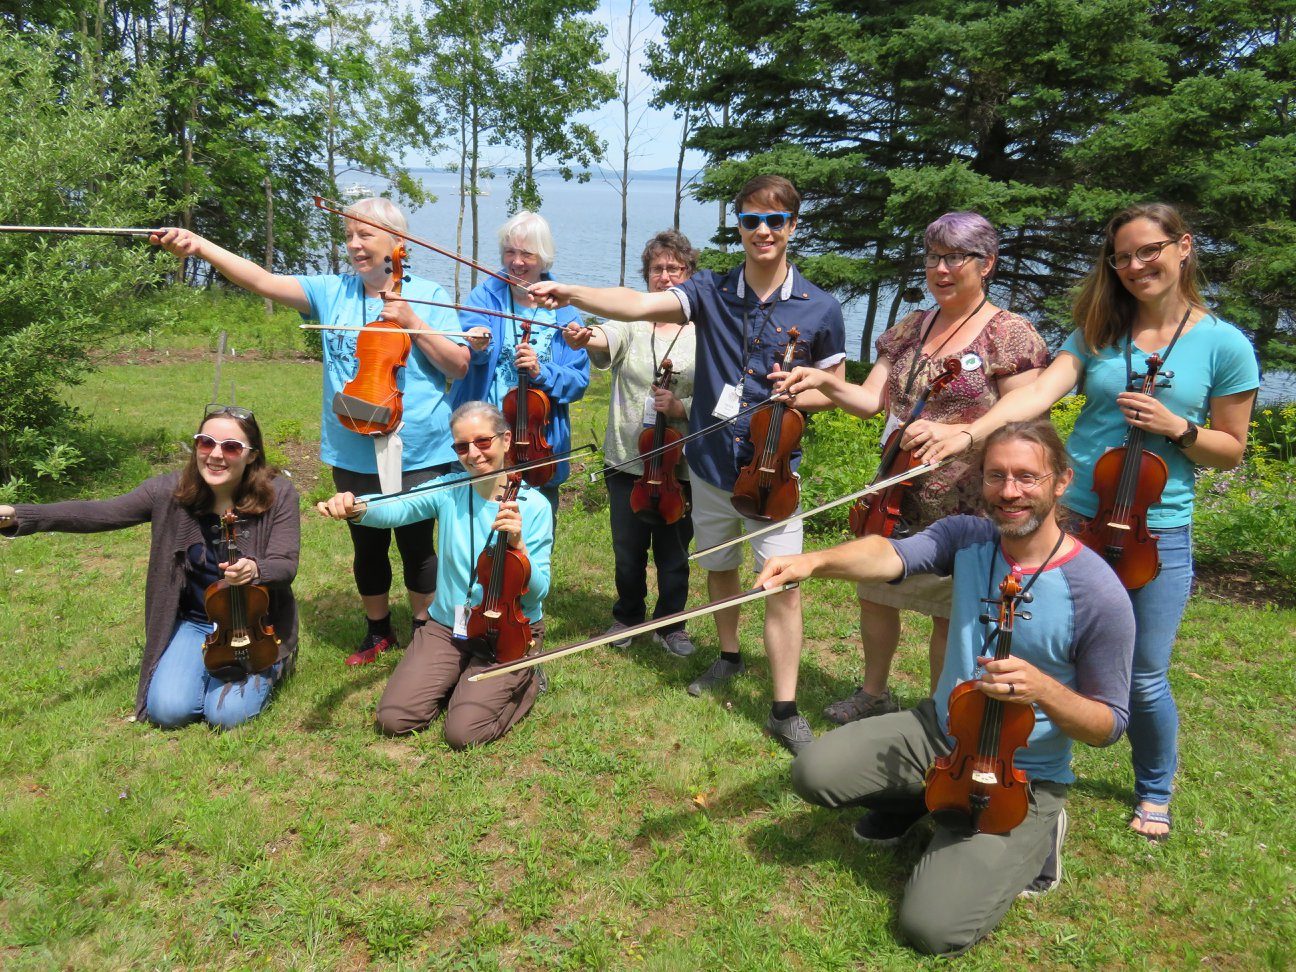 Seán's 2018 Beginner Fiddle Class. At the end of the week, these hard-working students walked away with alot of music and knowledge under their belts!